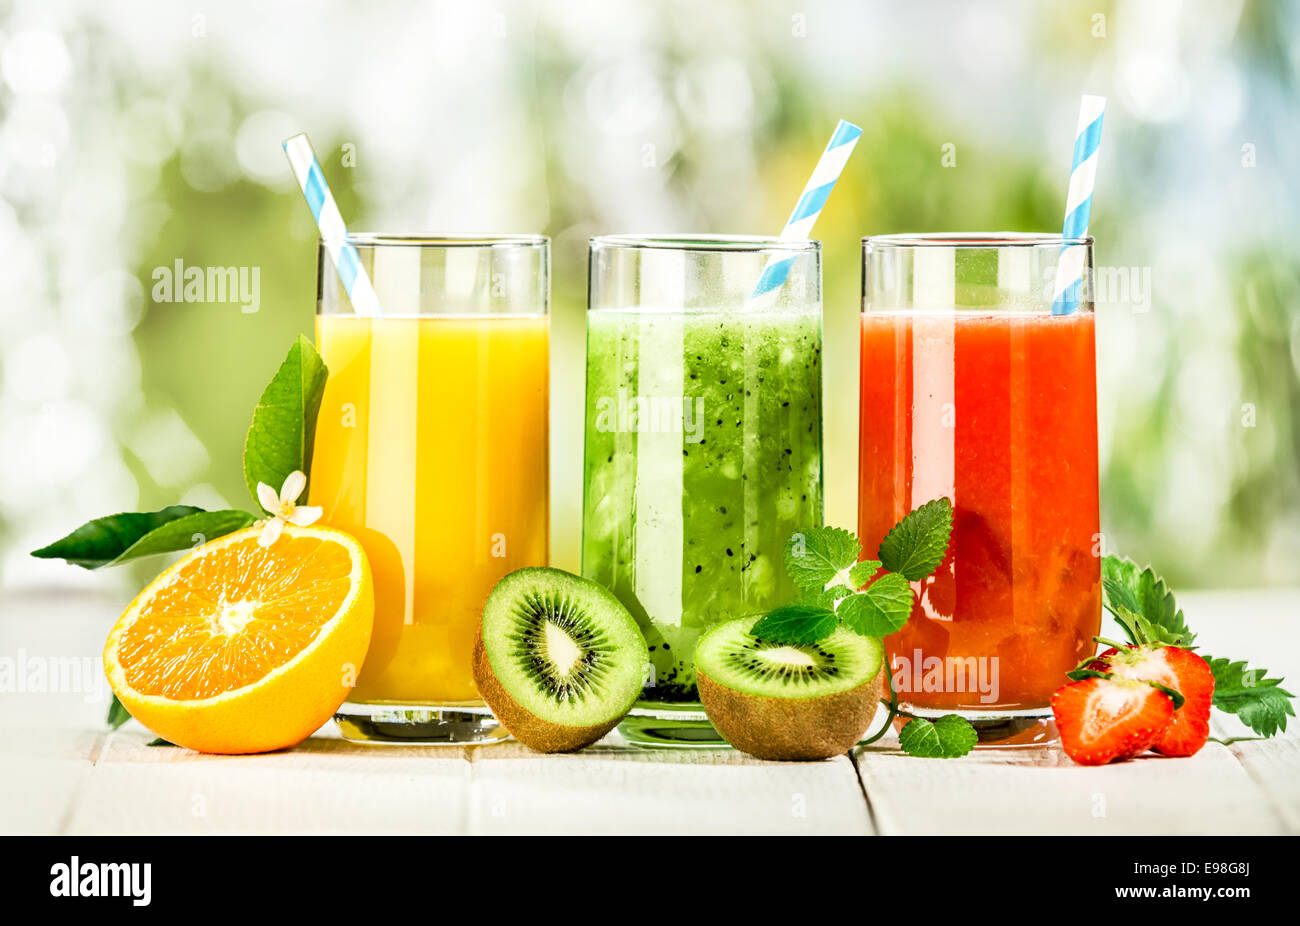 Delicious array of fresh fruit juices served in tall glasses made from liquidised orange, kiwifruit with peppermint, - Stock Image